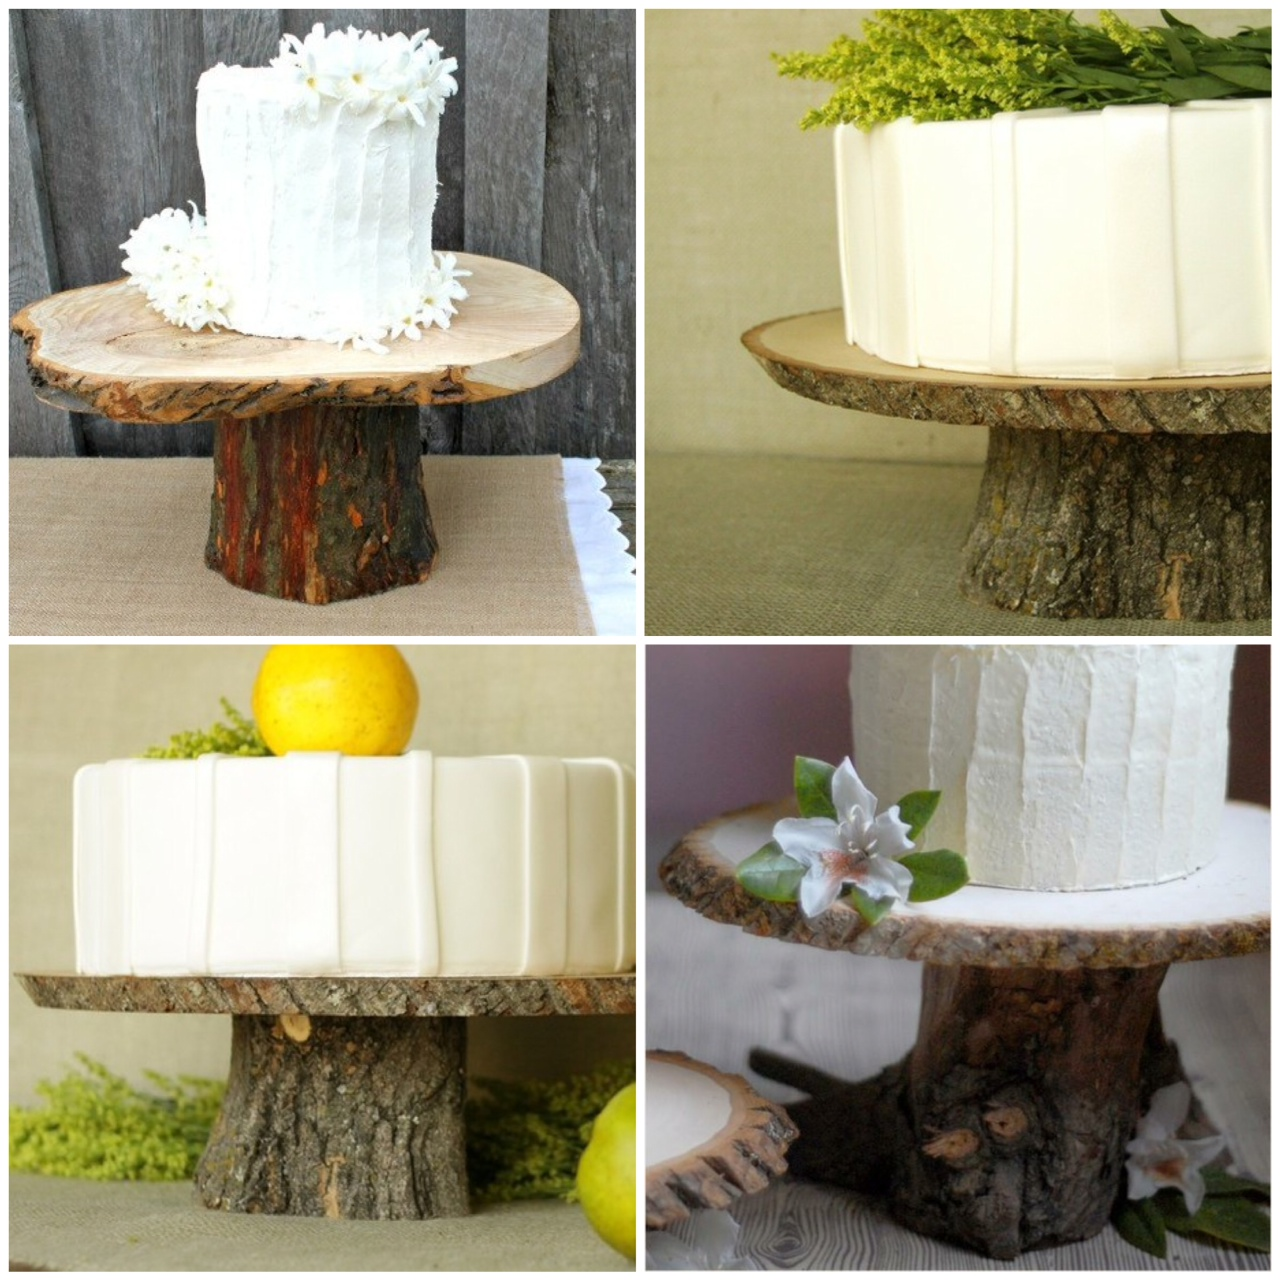 Rustic Wood Cake Stands A DIY